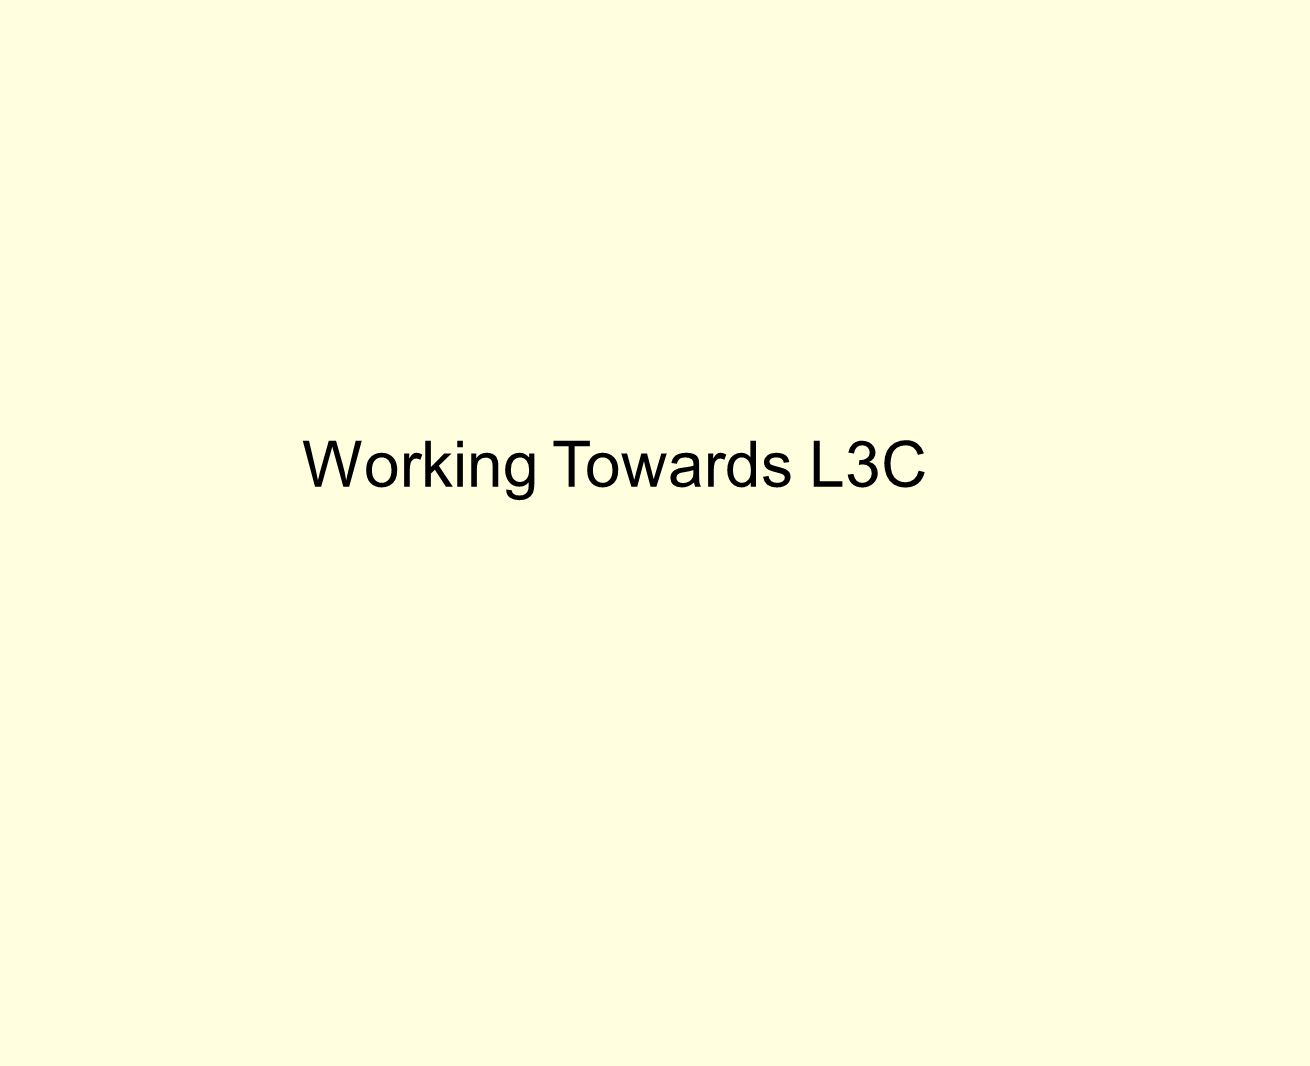 Working Towards L3C